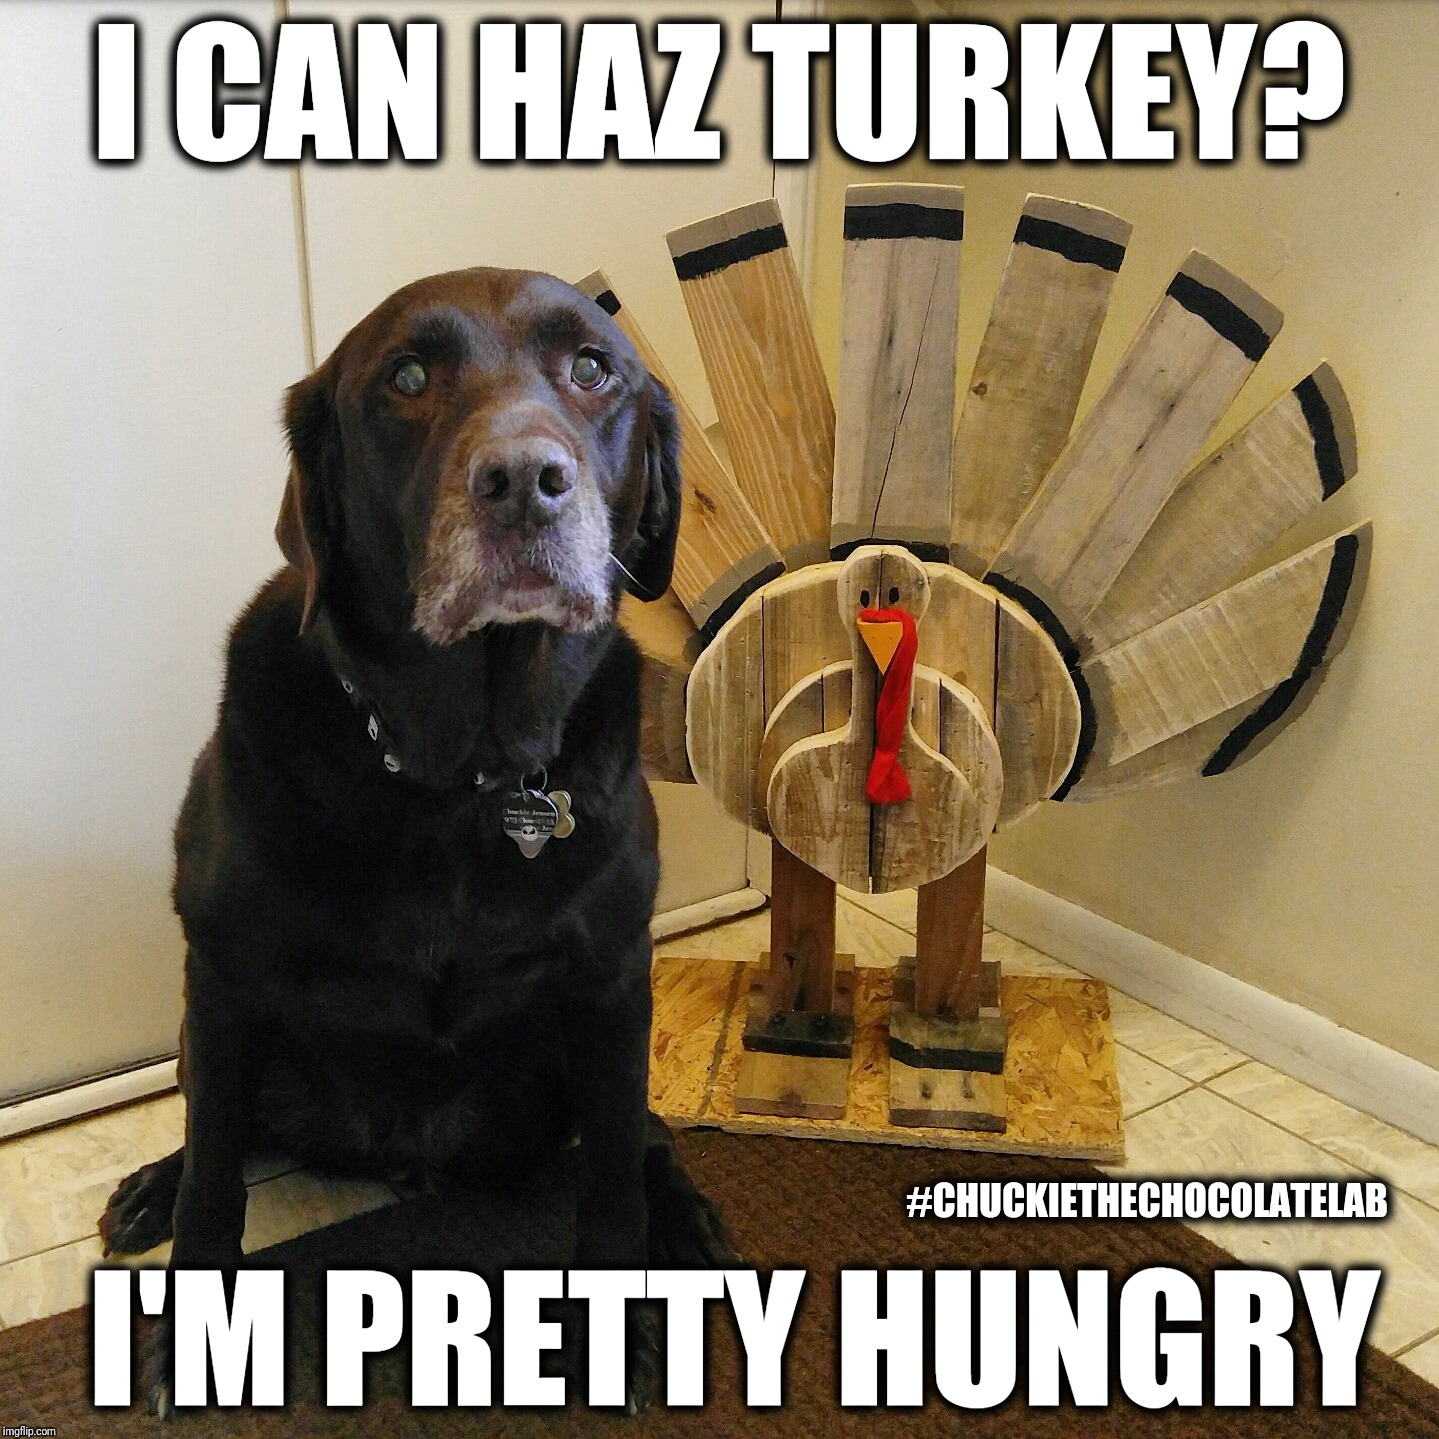 I can haz turkey?  | I CAN HAZ TURKEY? I'M PRETTY HUNGRY #CHUCKIETHECHOCOLATELAB | image tagged in chuckie the chocolate labteamchuckie,turkey,i can haz,thanksgiving,dogs,memes | made w/ Imgflip meme maker